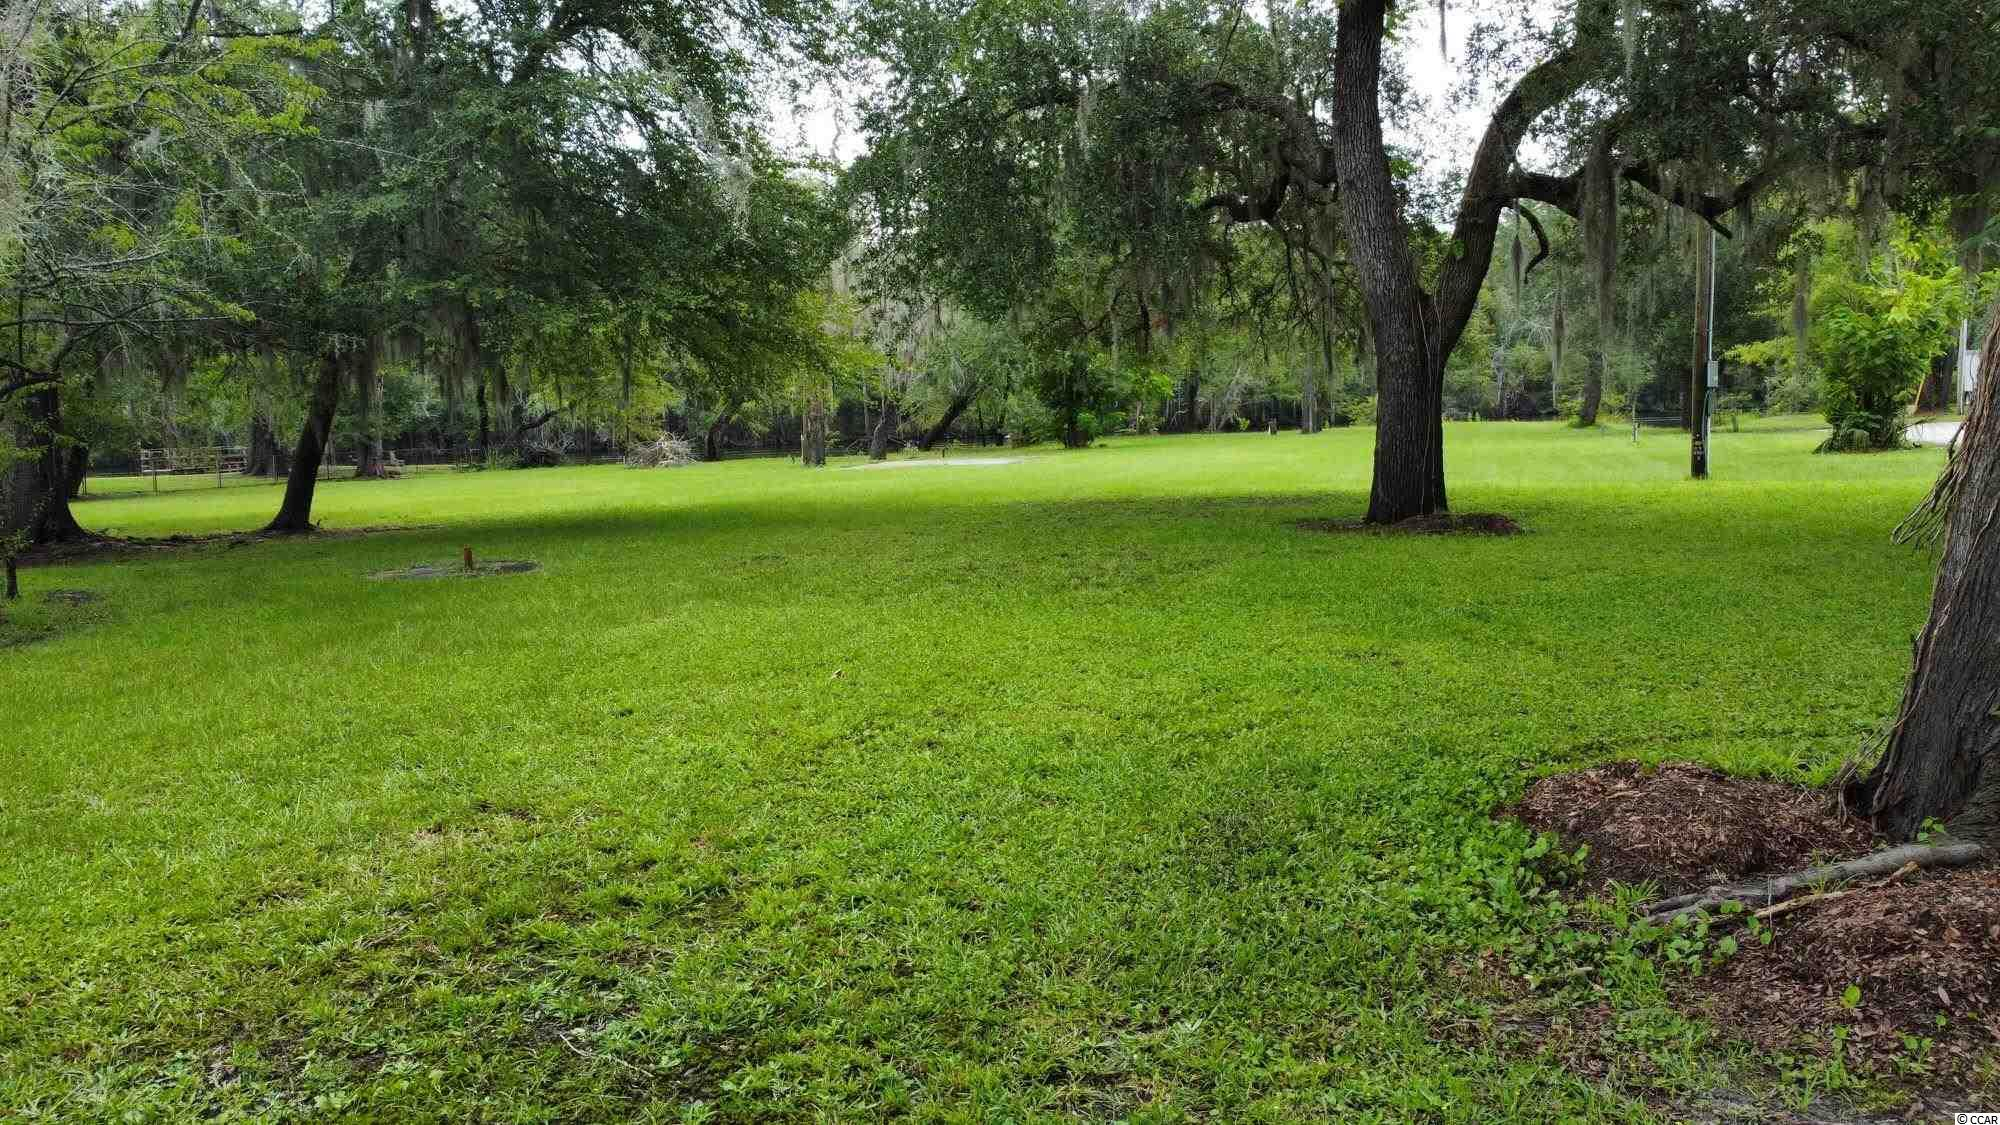 One of the larger Riverfront lots on Pitch landing Drive, just over 1/2 acre. The ninth lot from the landing.  This lot could be subdivided into 2 lots. Buyer is responsible for verifying information.